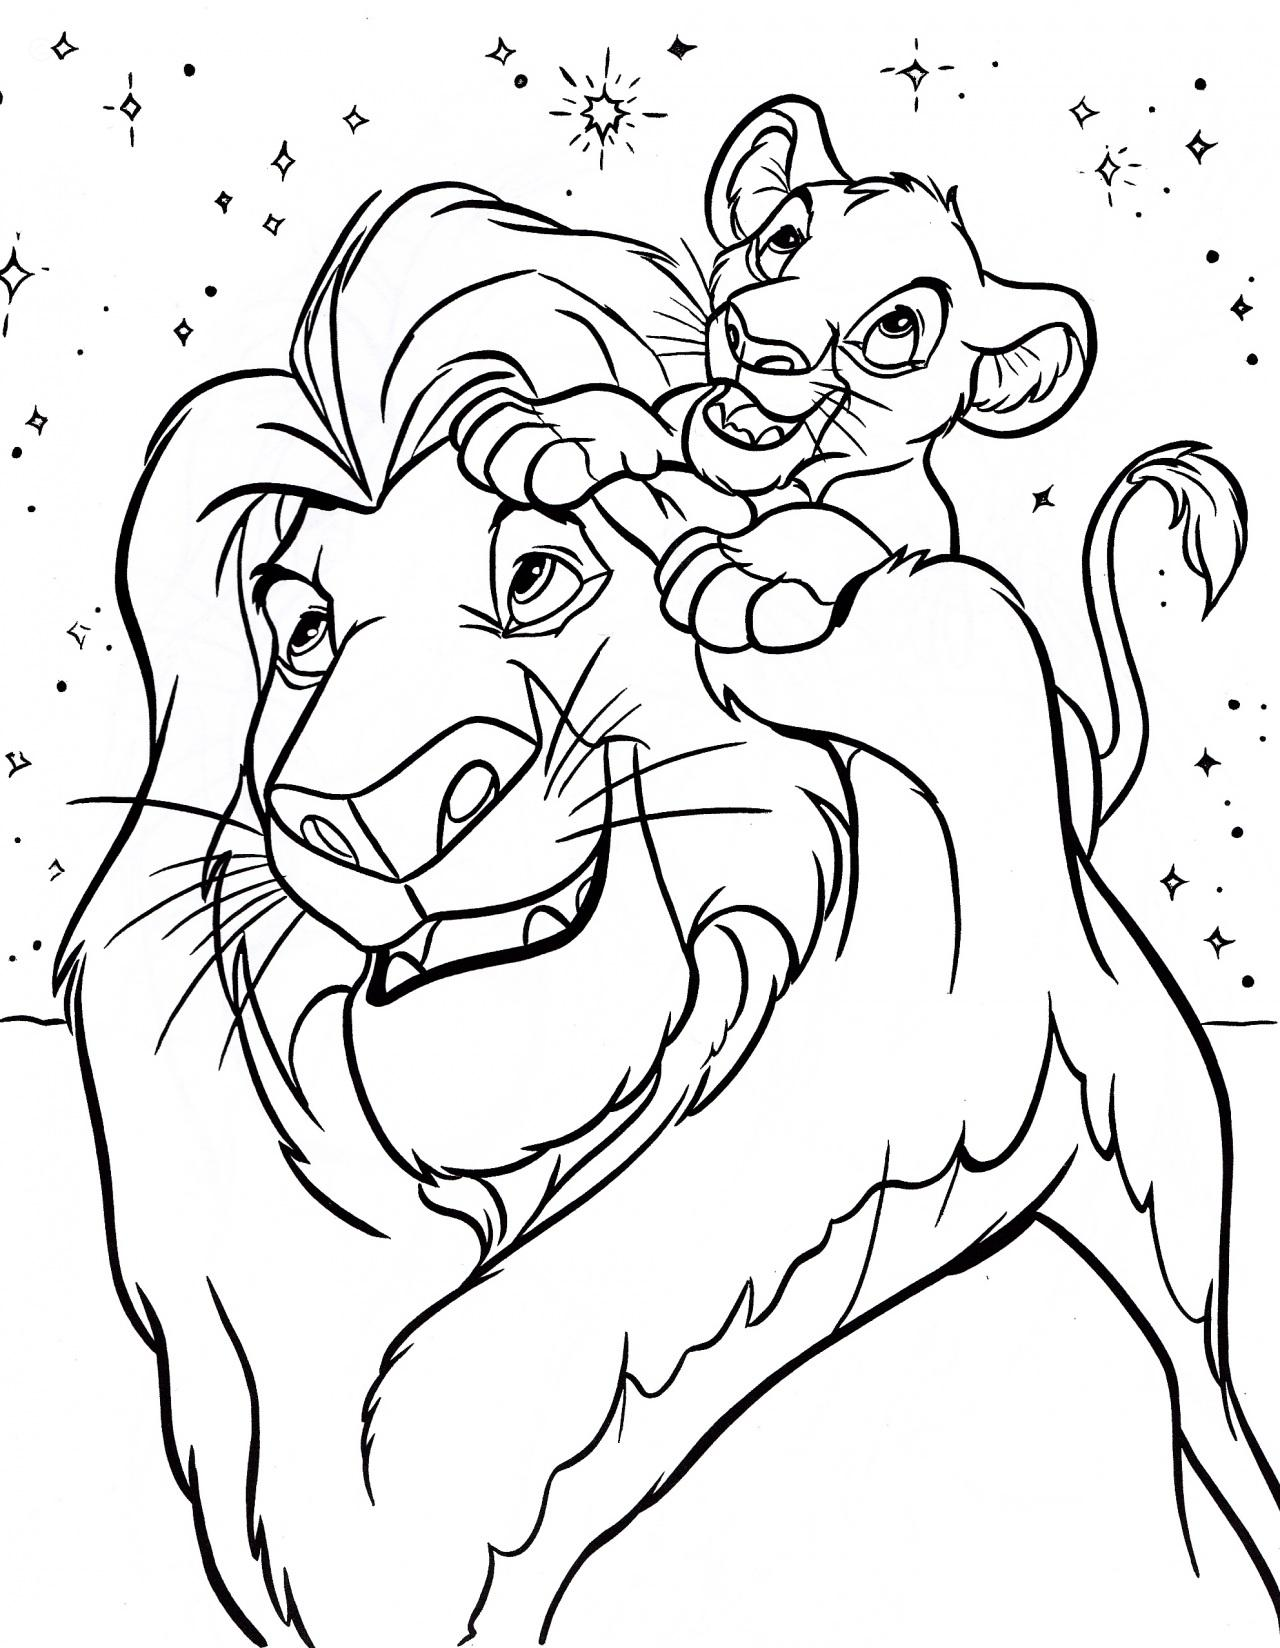 Free coloring pages lion king - Free Printable Lion King Coloring Pages